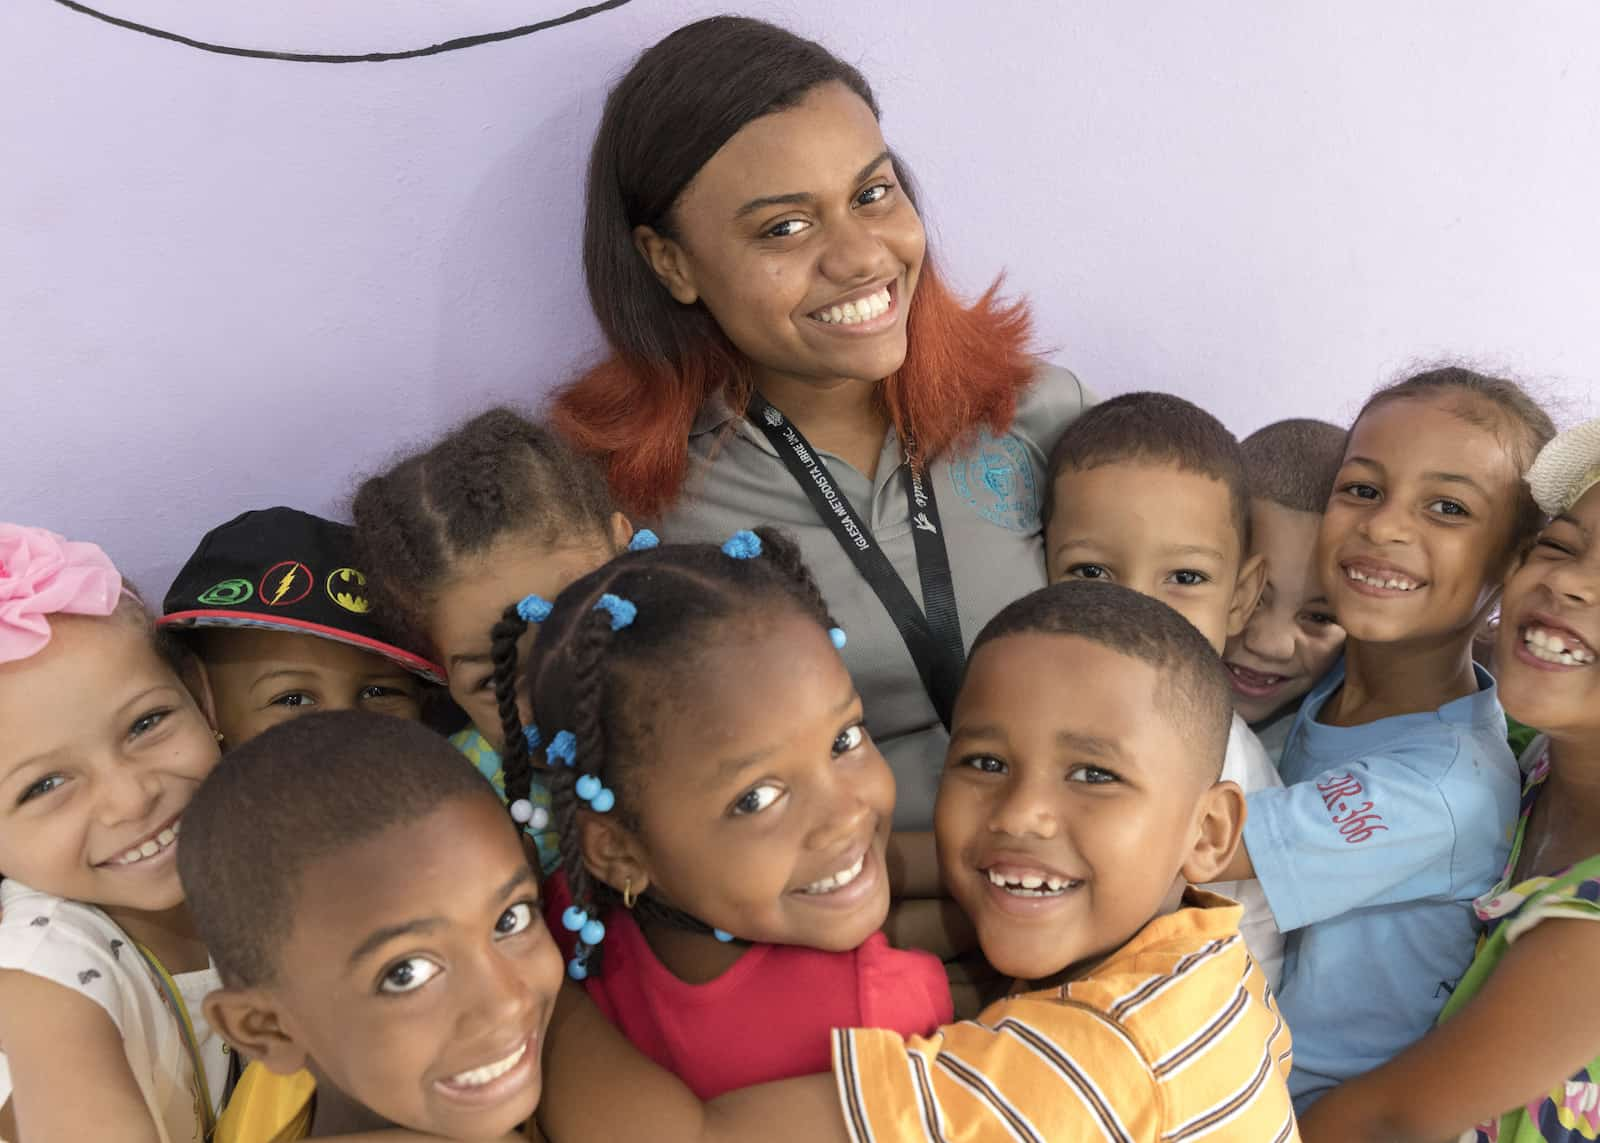 A woman stands with a group of children hugging her